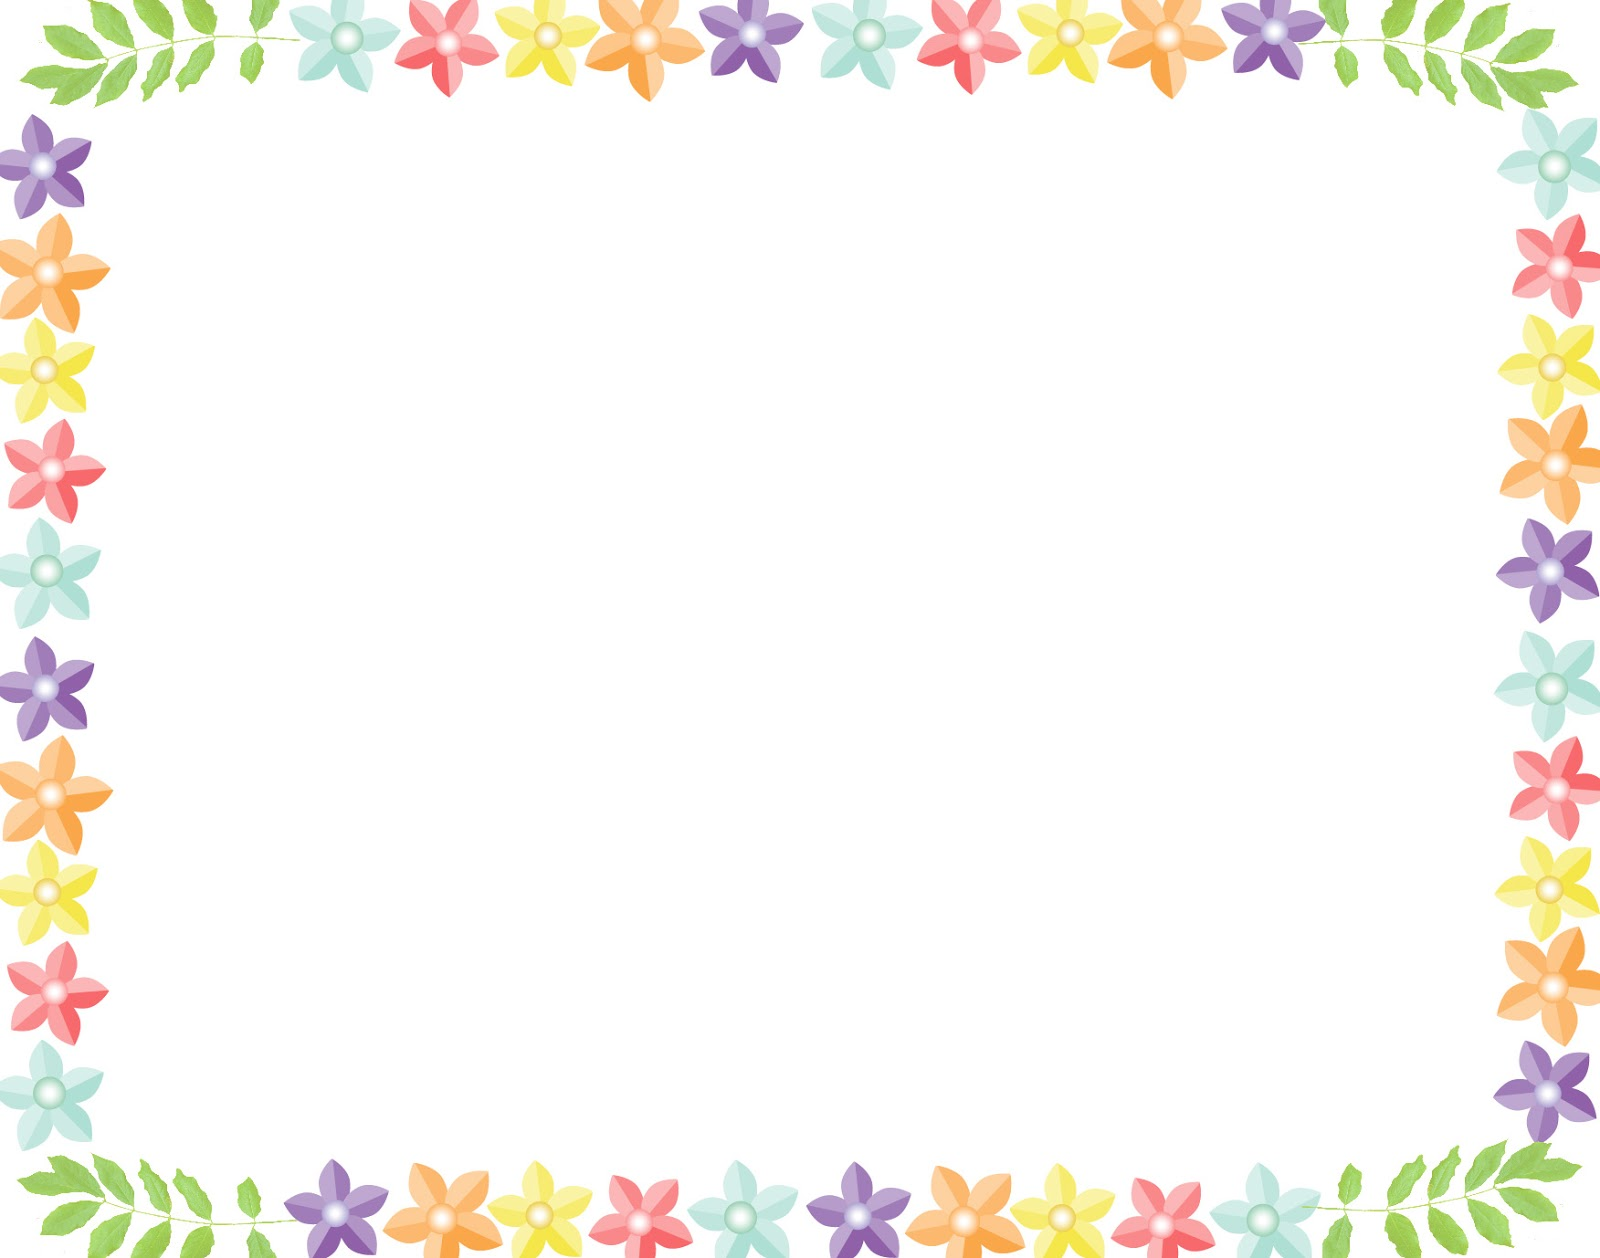 hight resolution of borders background white gallery free background borders